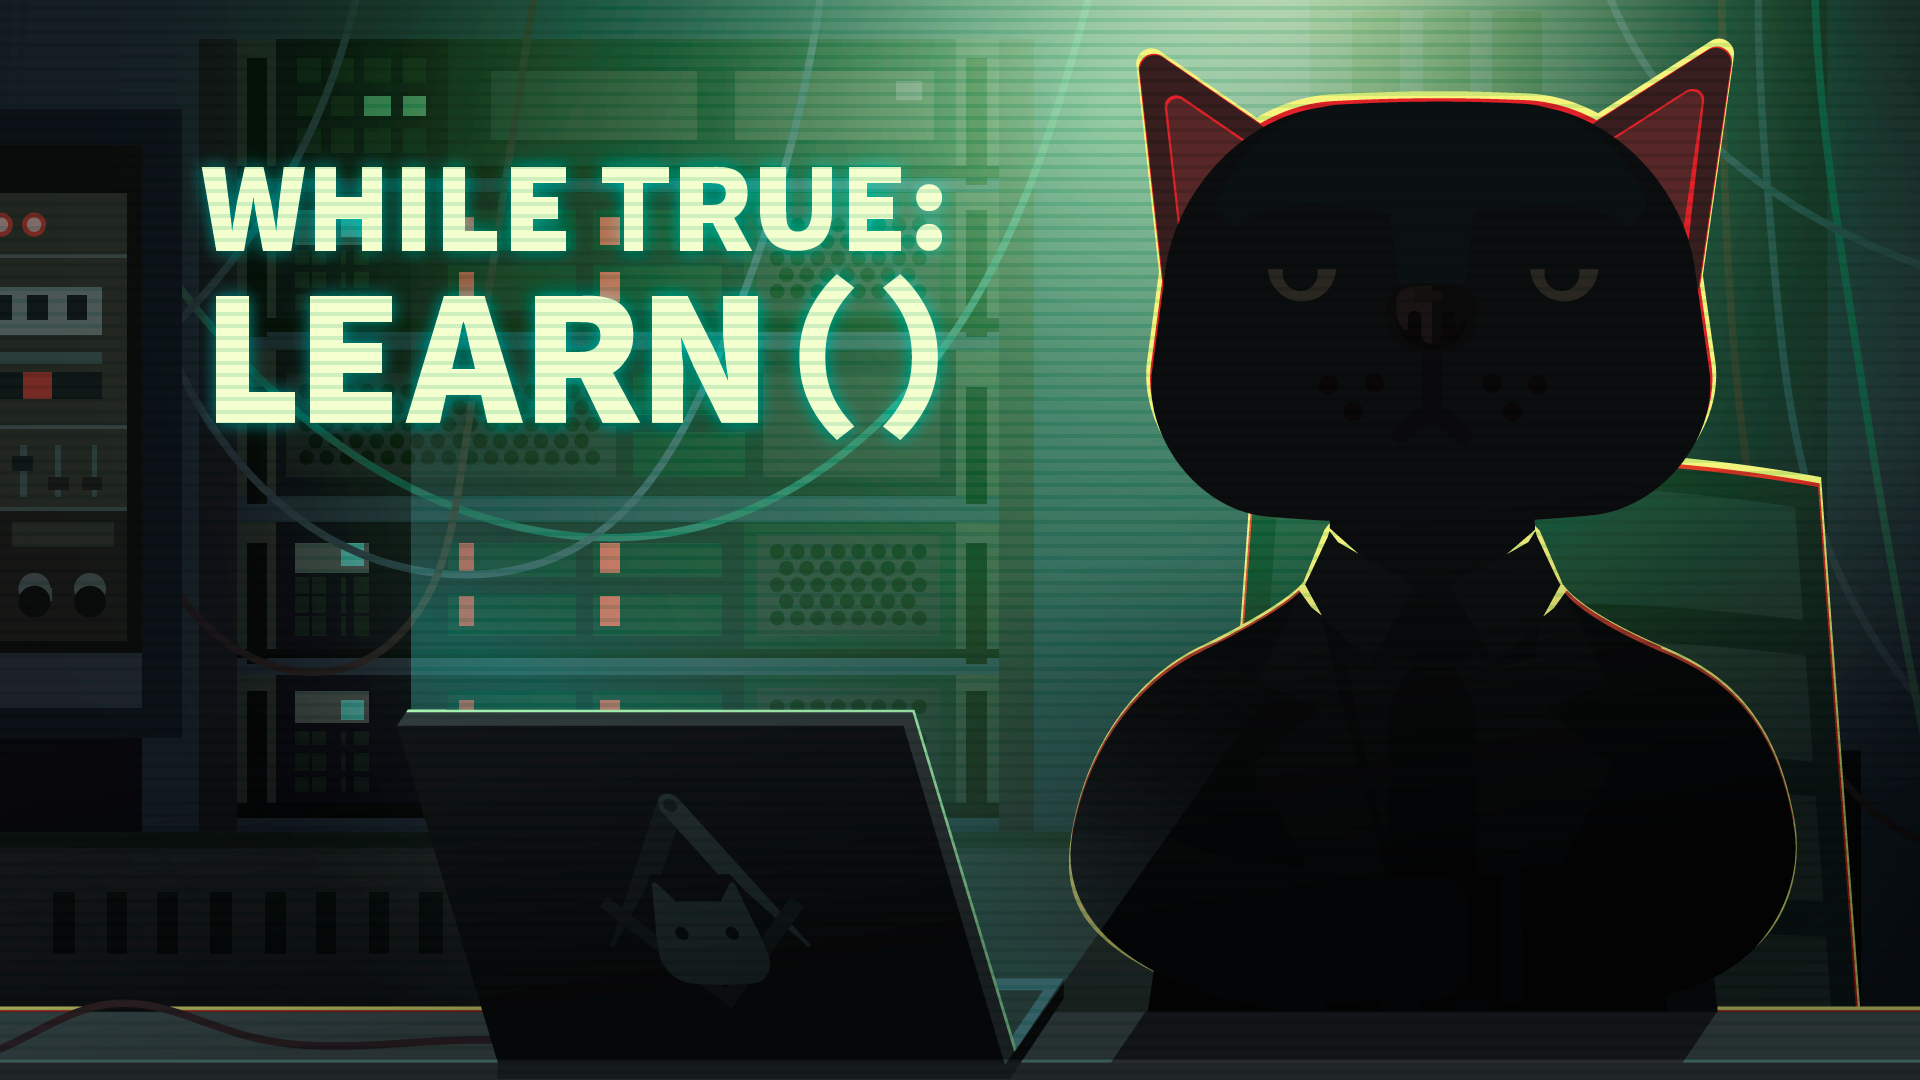 While True Learn Hd Wallpaper Background Image 1920x1080 Id 987260 Wallpaper Abyss